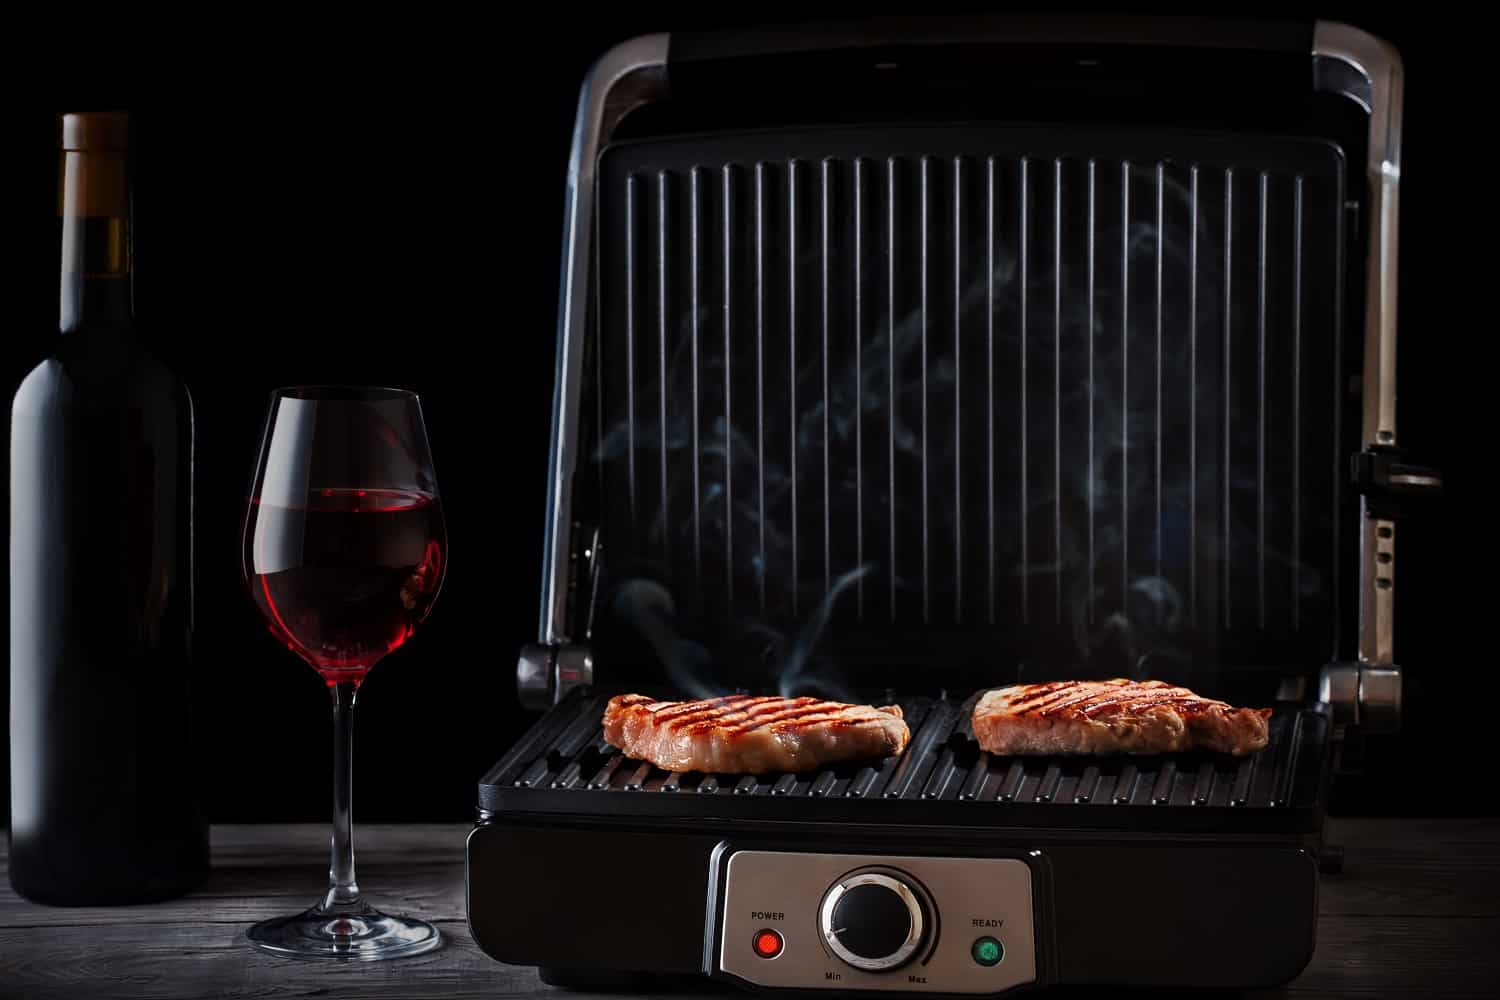 Fried steaming meat with red wine on a wooden table. Black background. Luxury style.